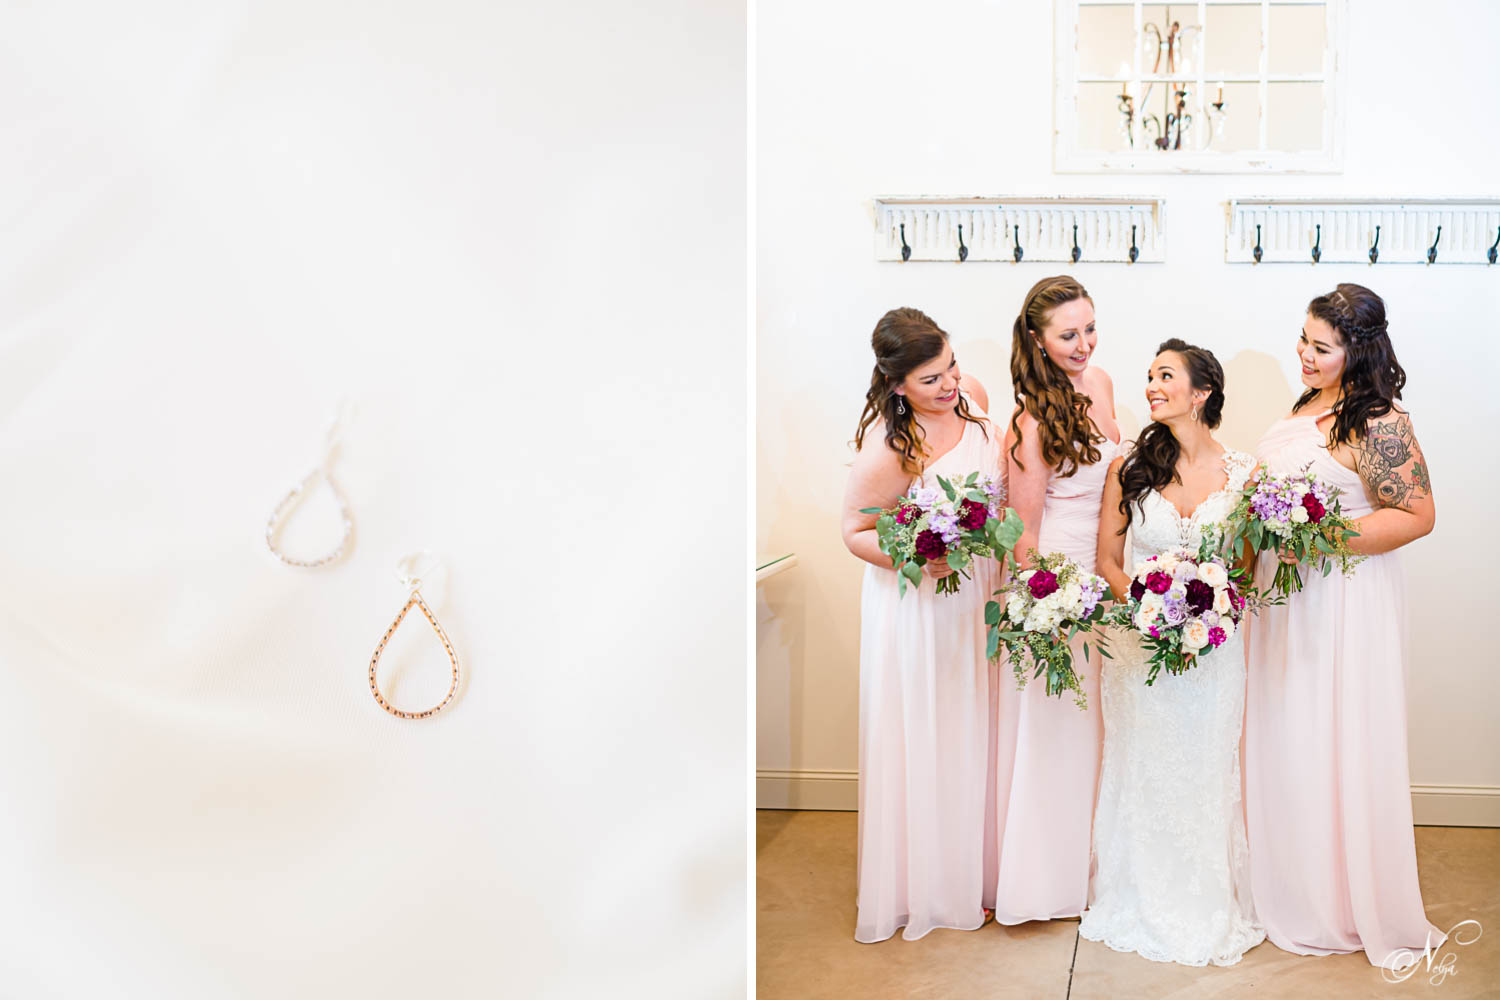 tear drop earrings and bridesmaids pose with bride at hiwassee river weddings